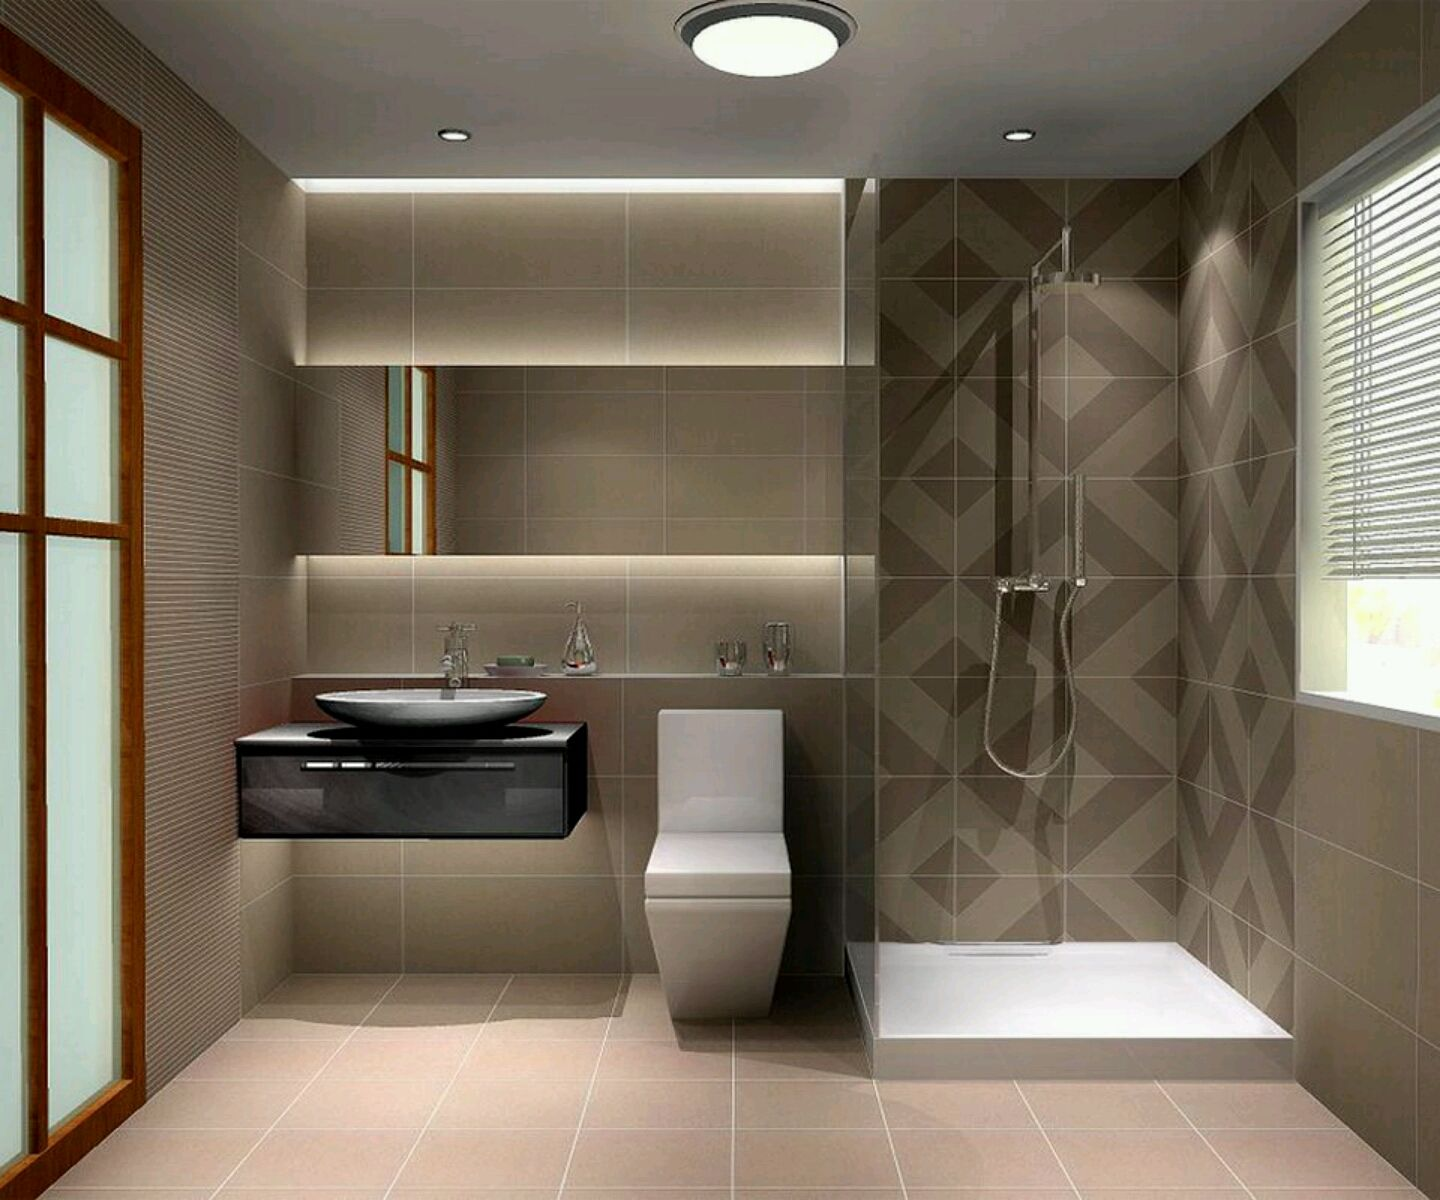 Bathrooms Designs Small Bathrooms Designs 2014 T In Inspiration